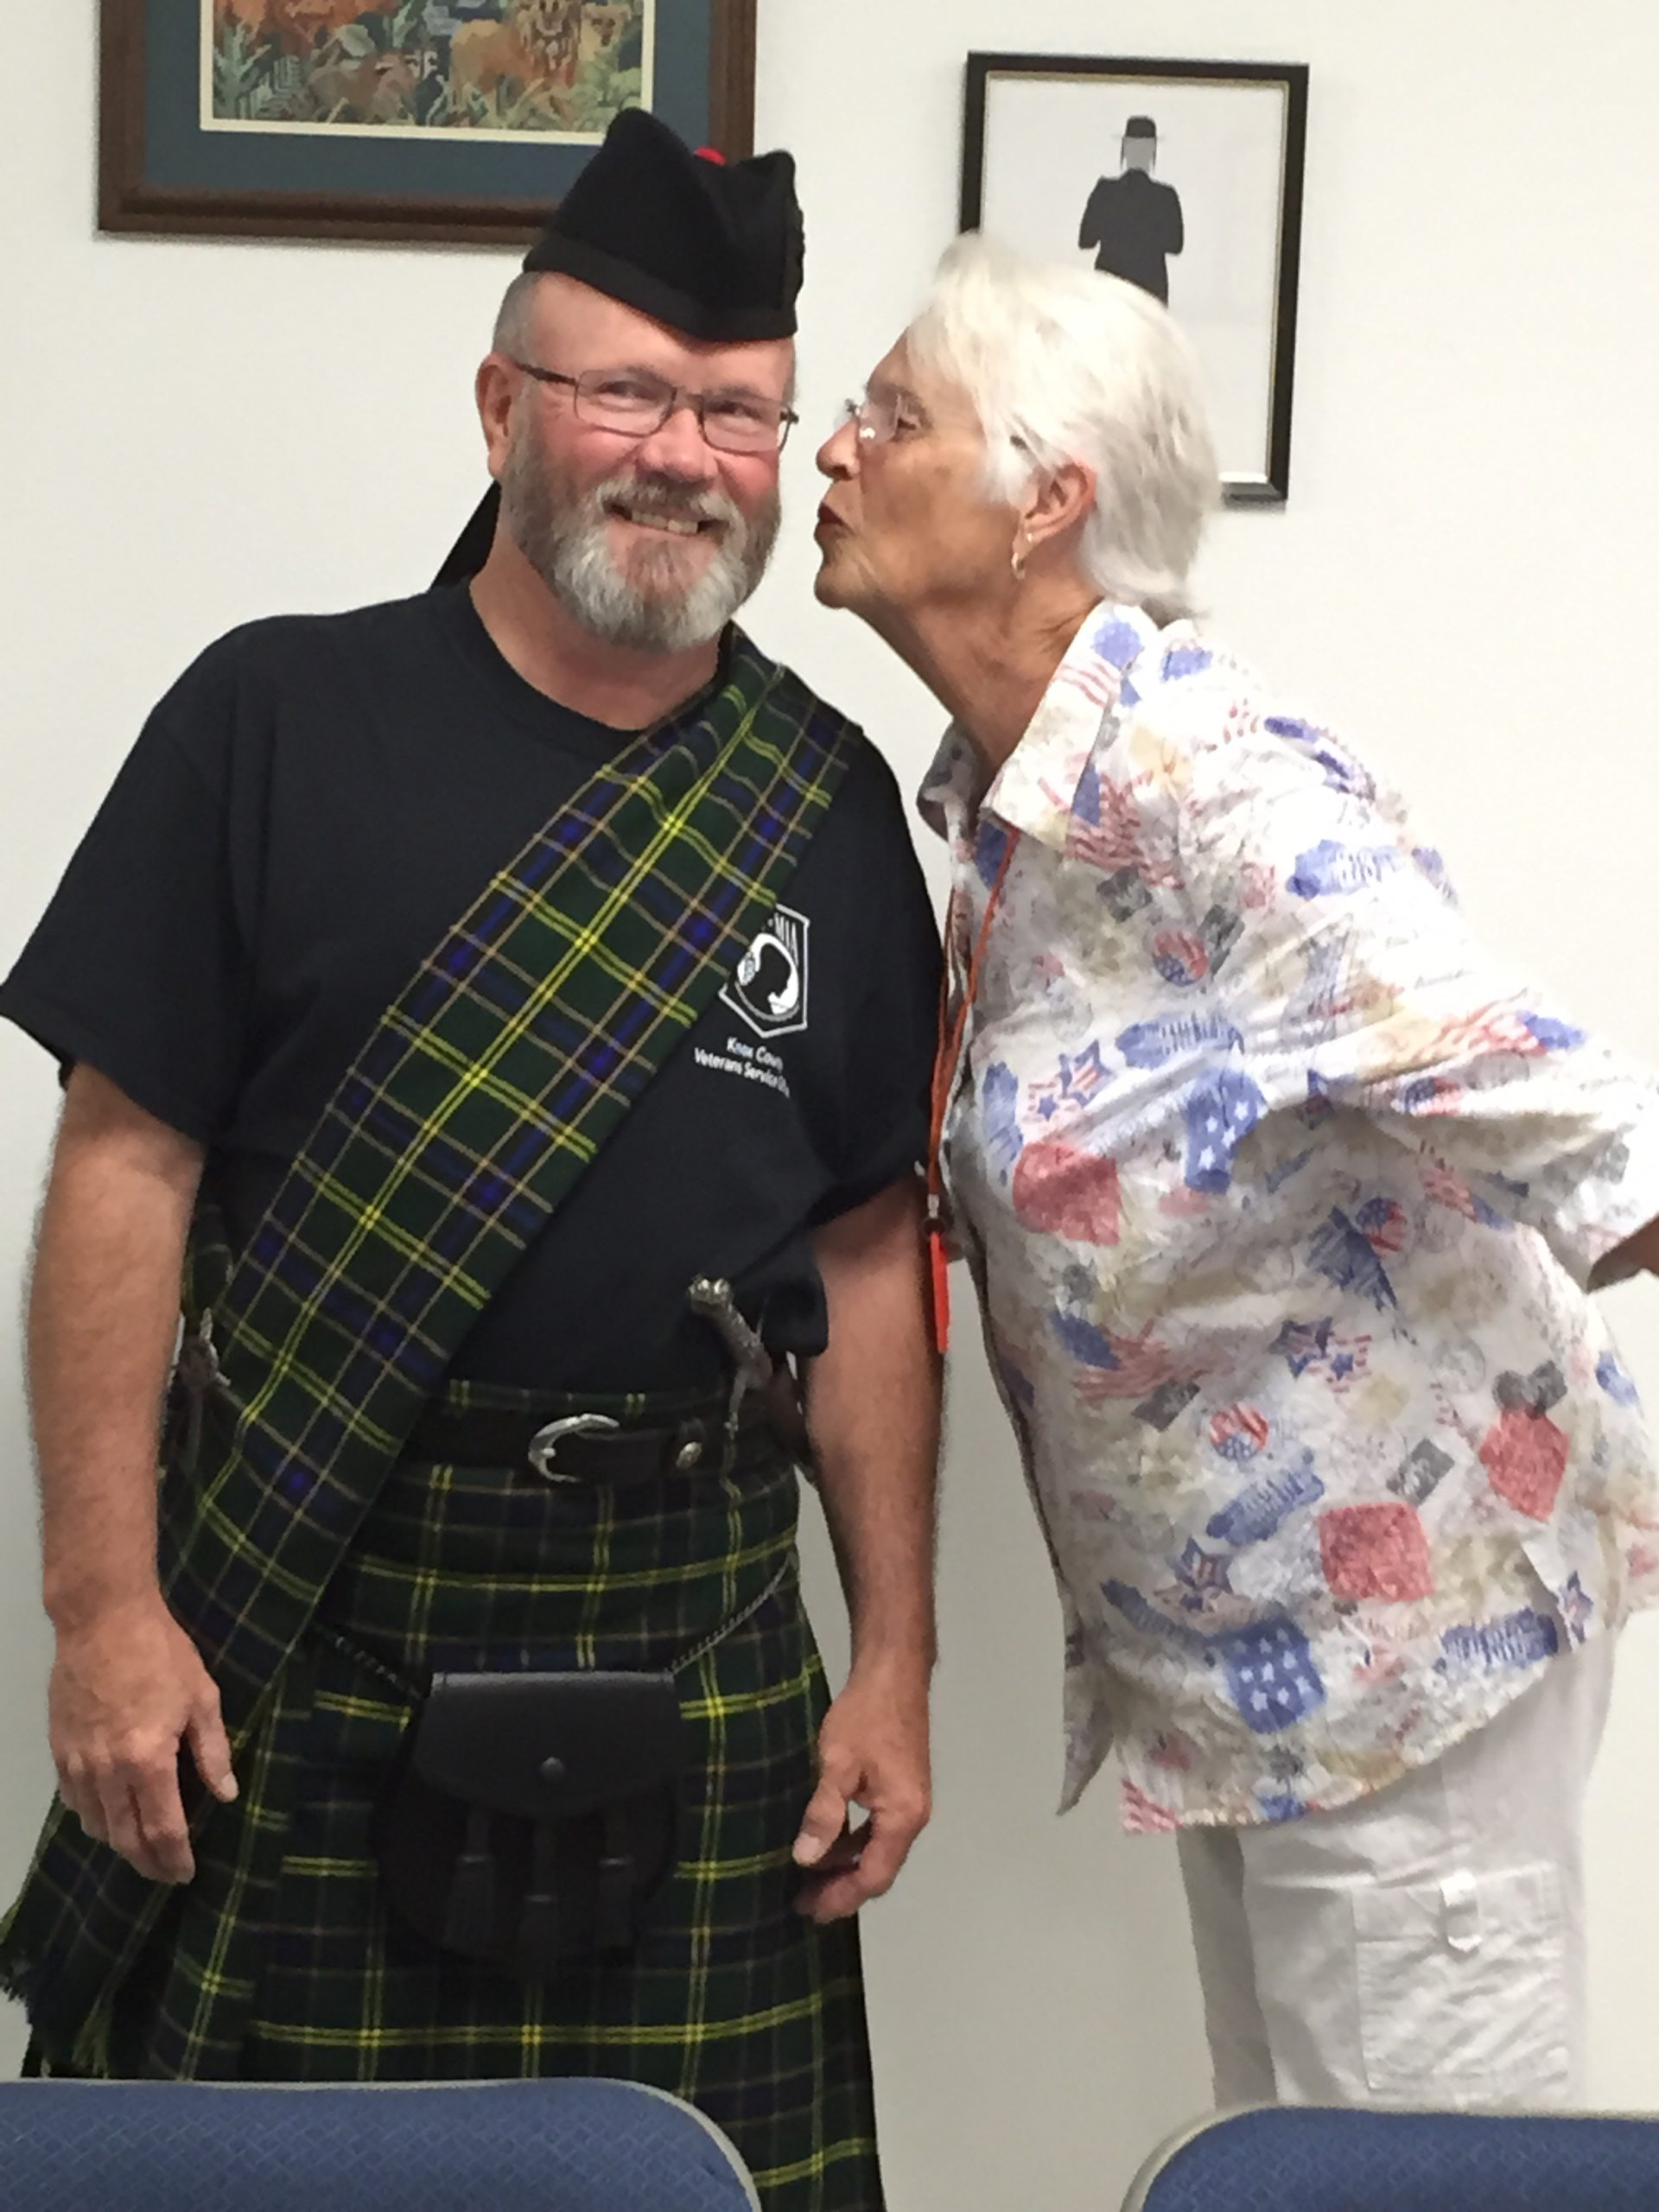 The Scot and his lady also make a covenant of peace!